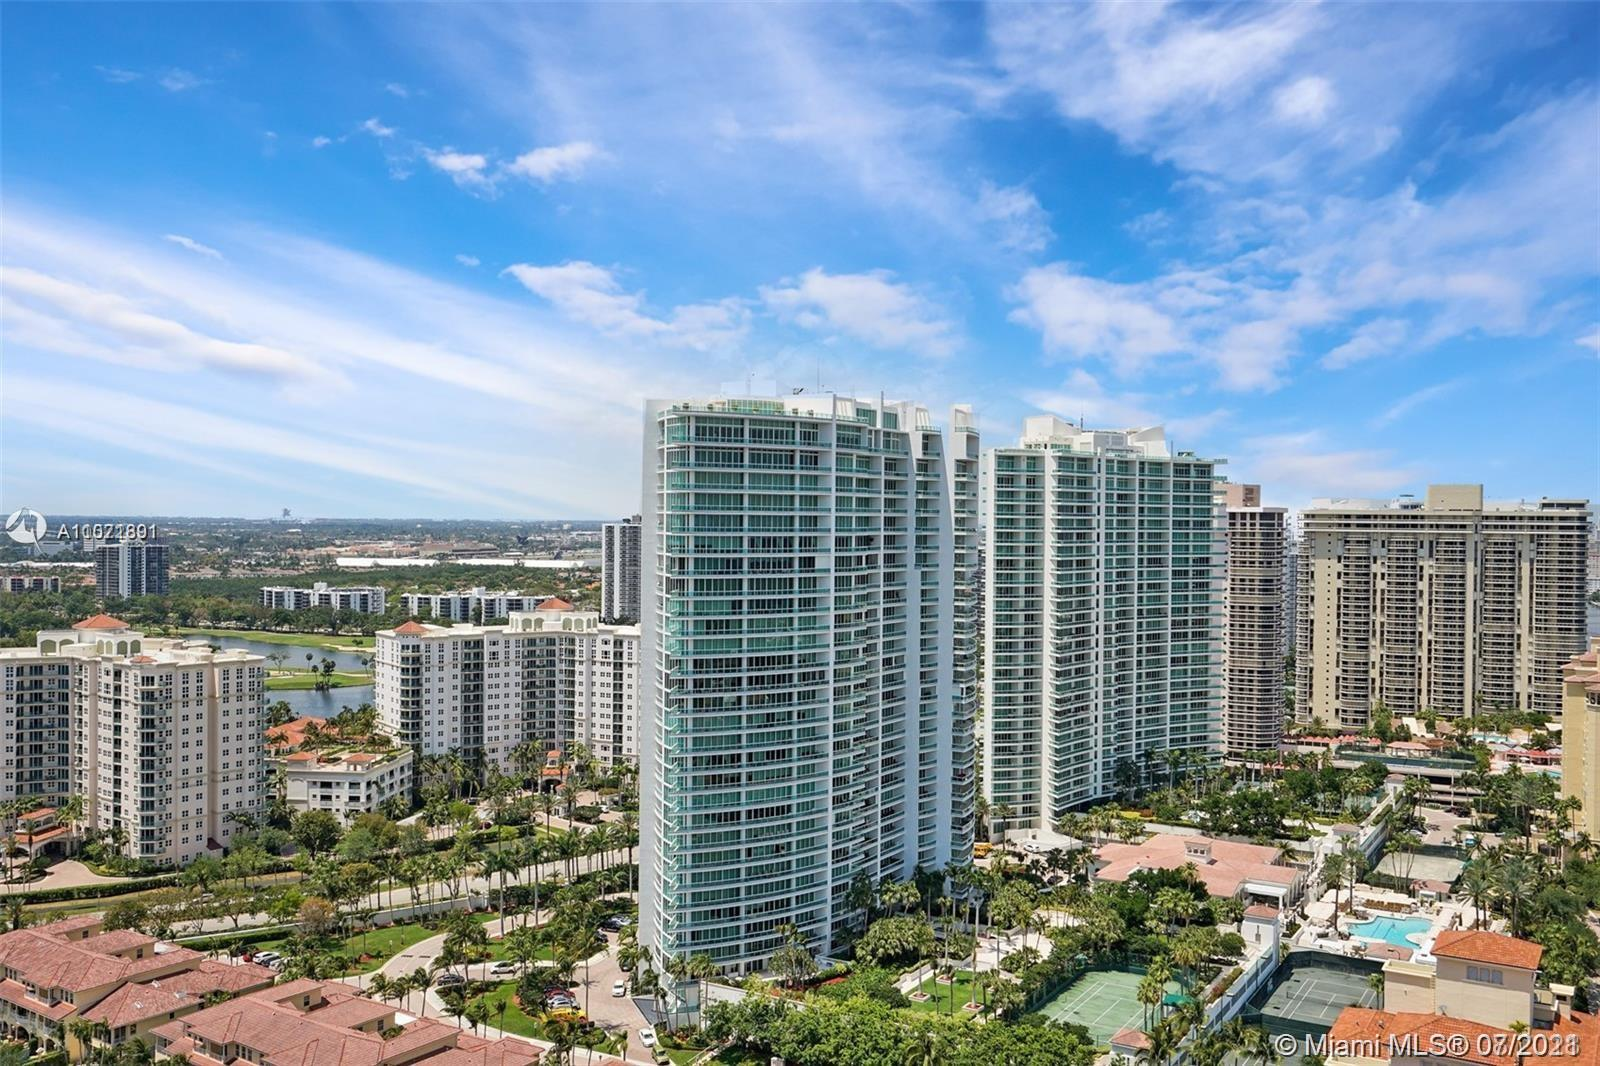 Turnberry Isle North Tower #TS-2 - 19707 Turnberry Way #TS-2, Aventura, FL 33180